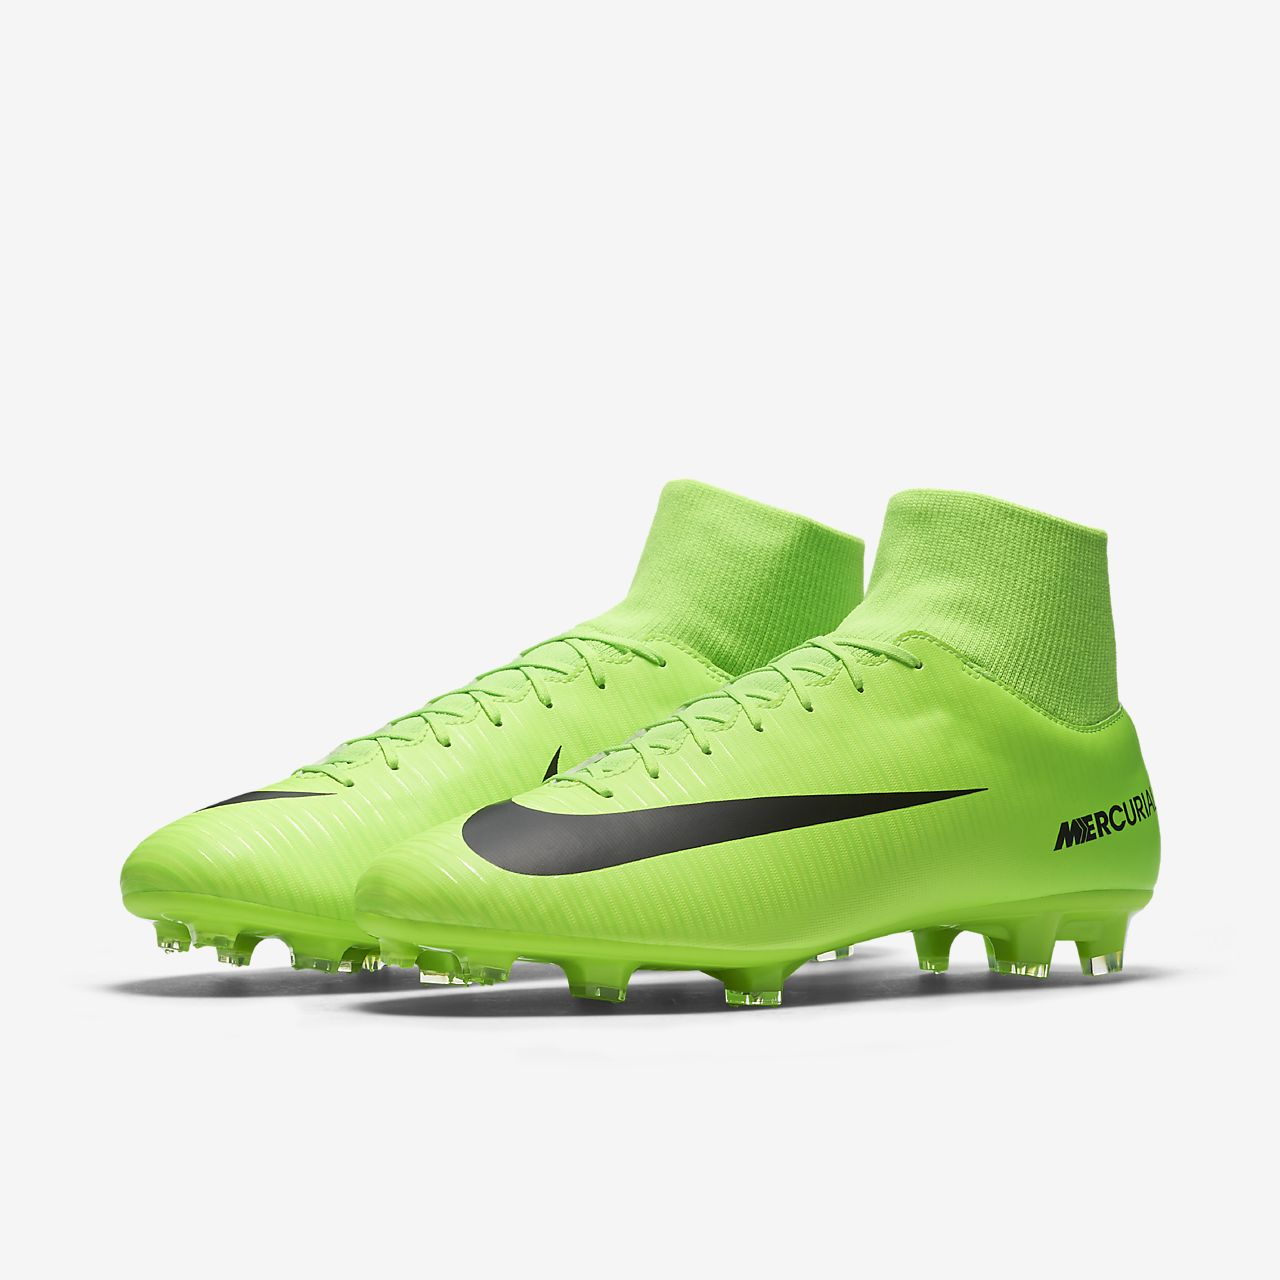 ... Nike Mercurial Victory VI Dynamic Fit FG Firm-Ground Football Boot